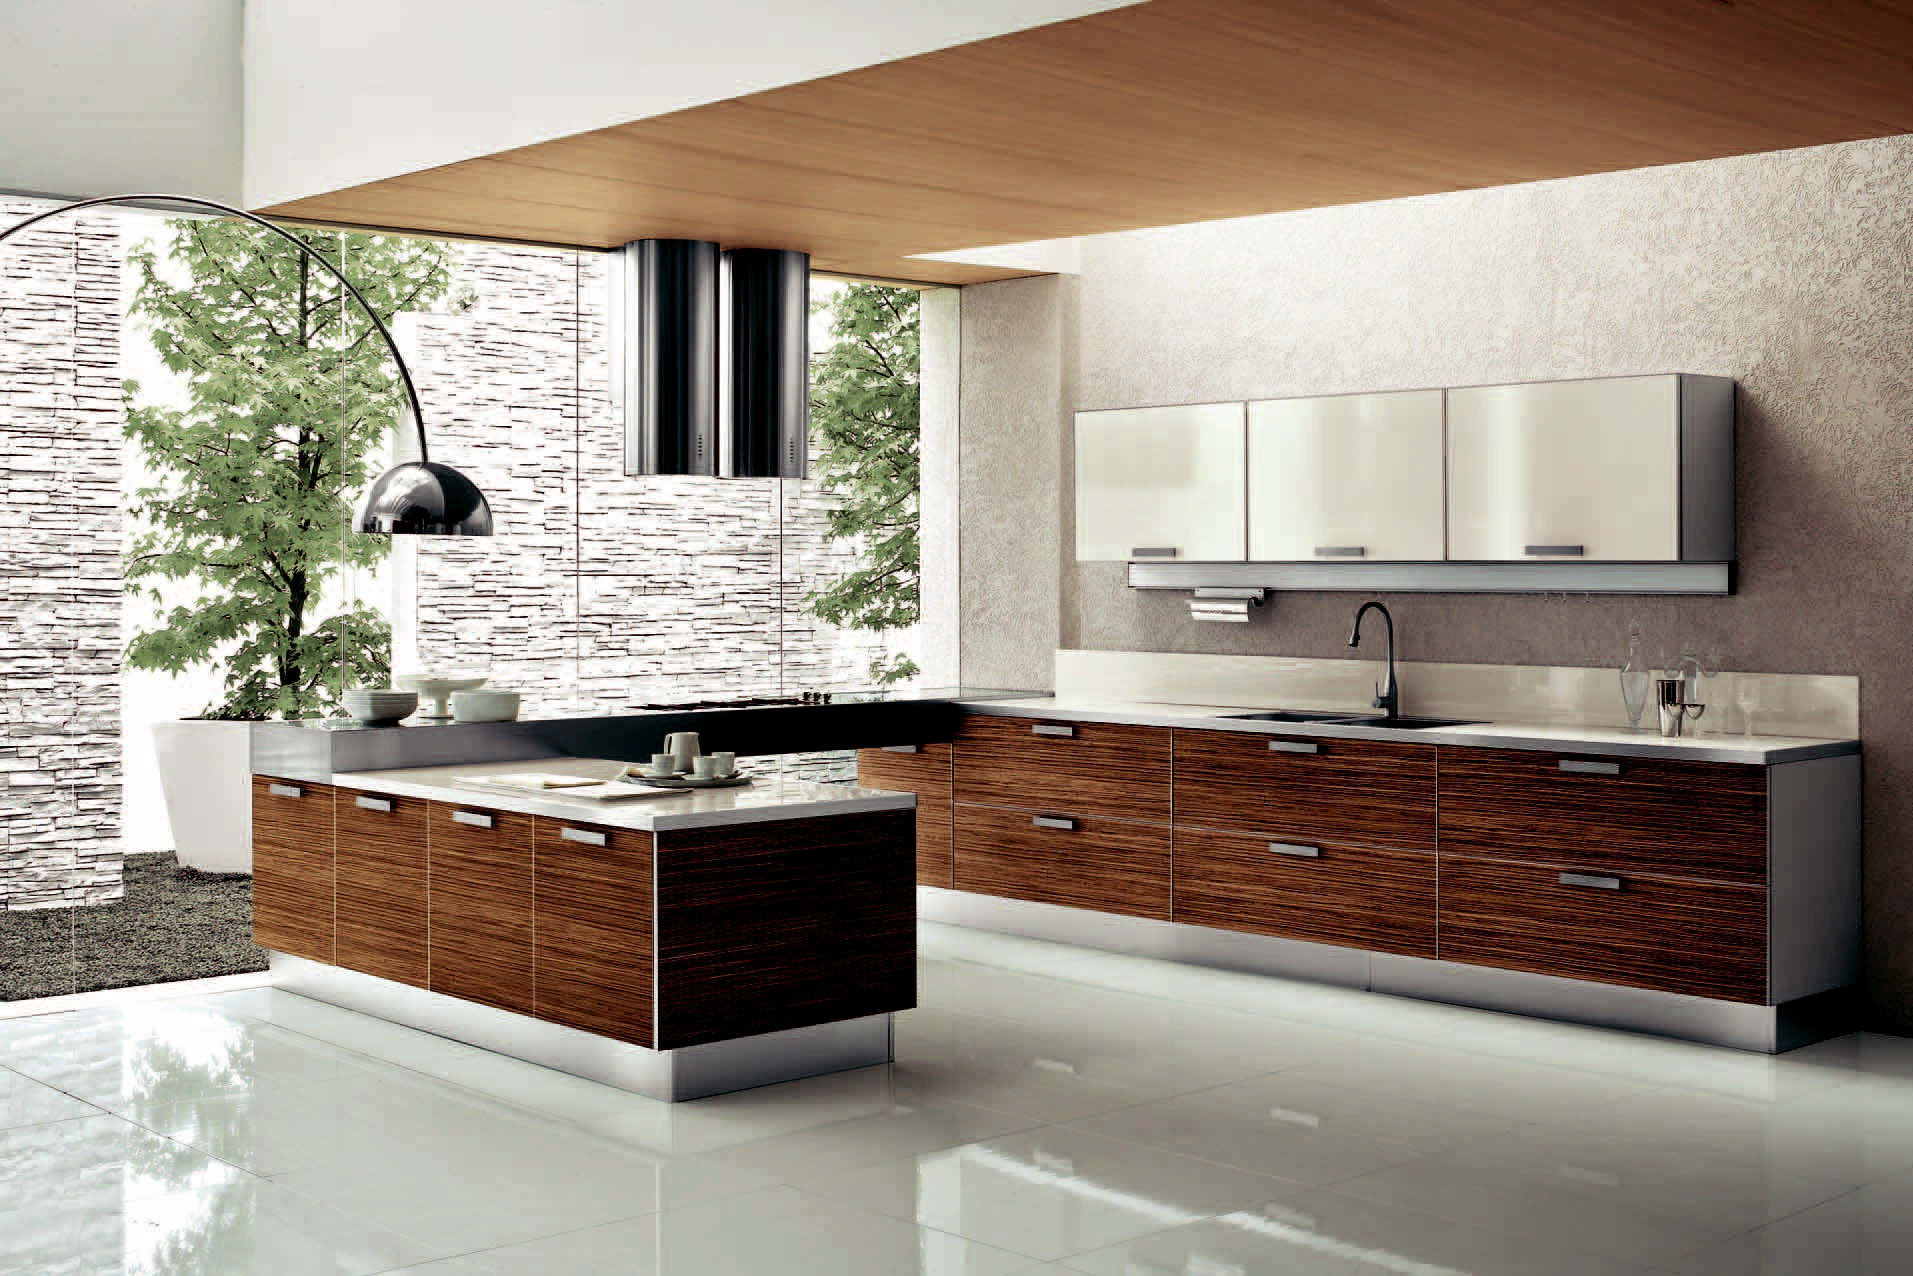 Beyond kitchens kitchen cupboards cape town kitchens for New style kitchen cabinets